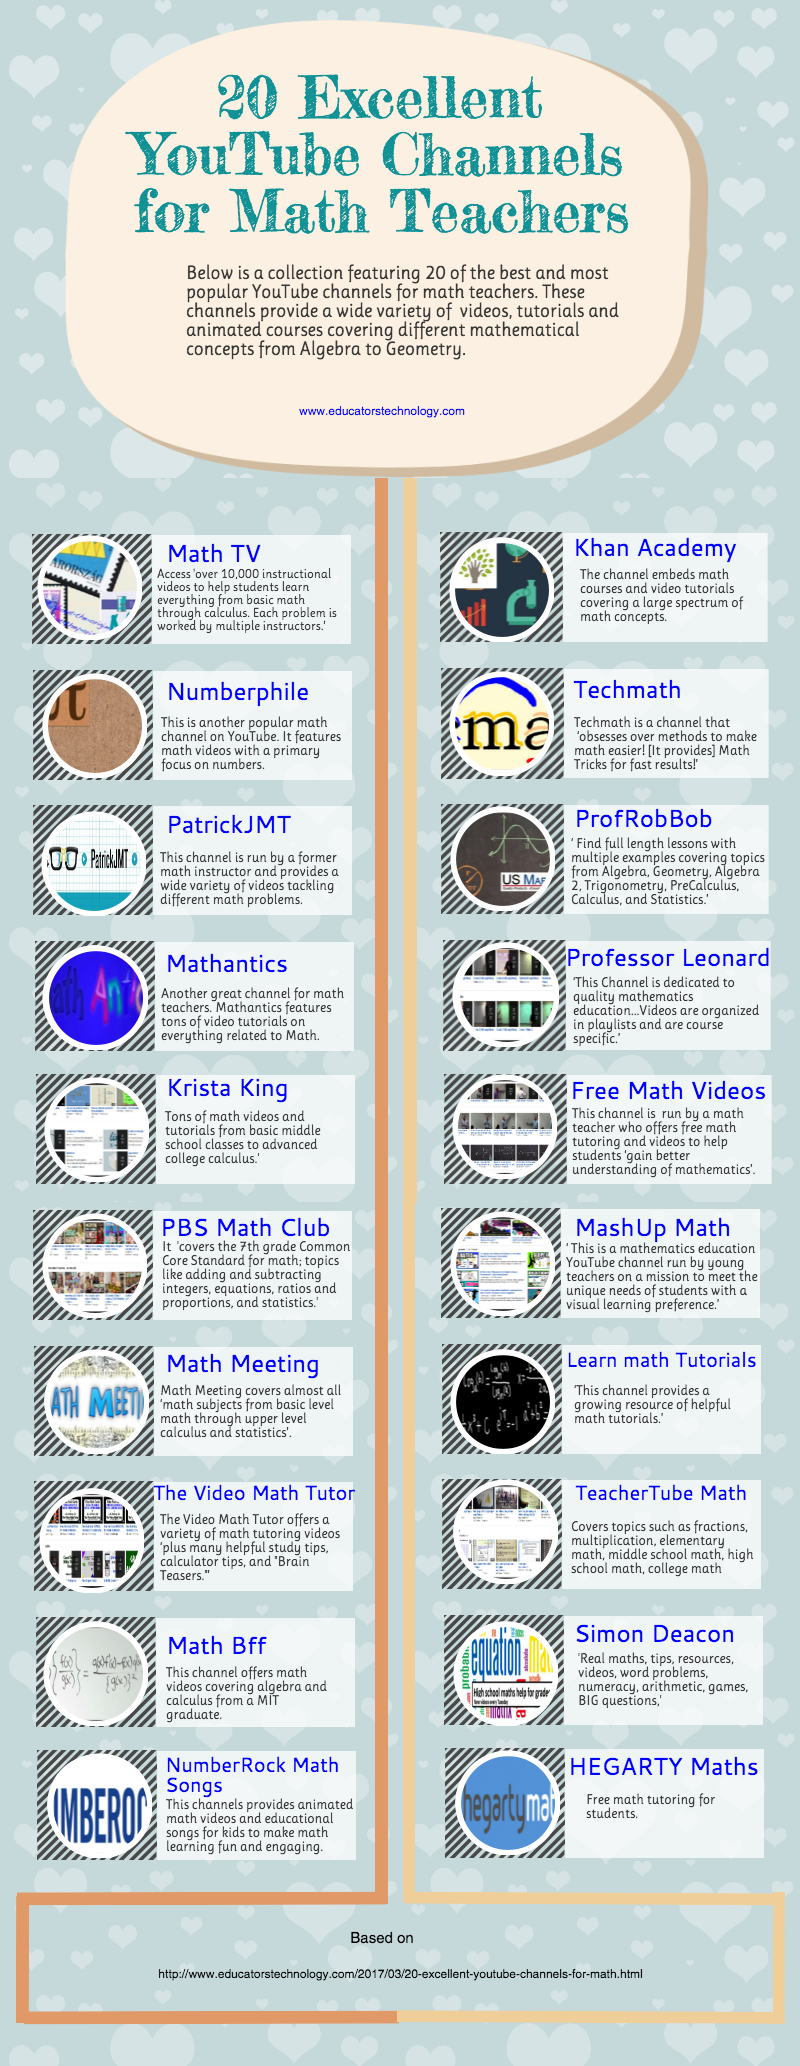 20 YouTube Channels Every Math Teacher Should Know About